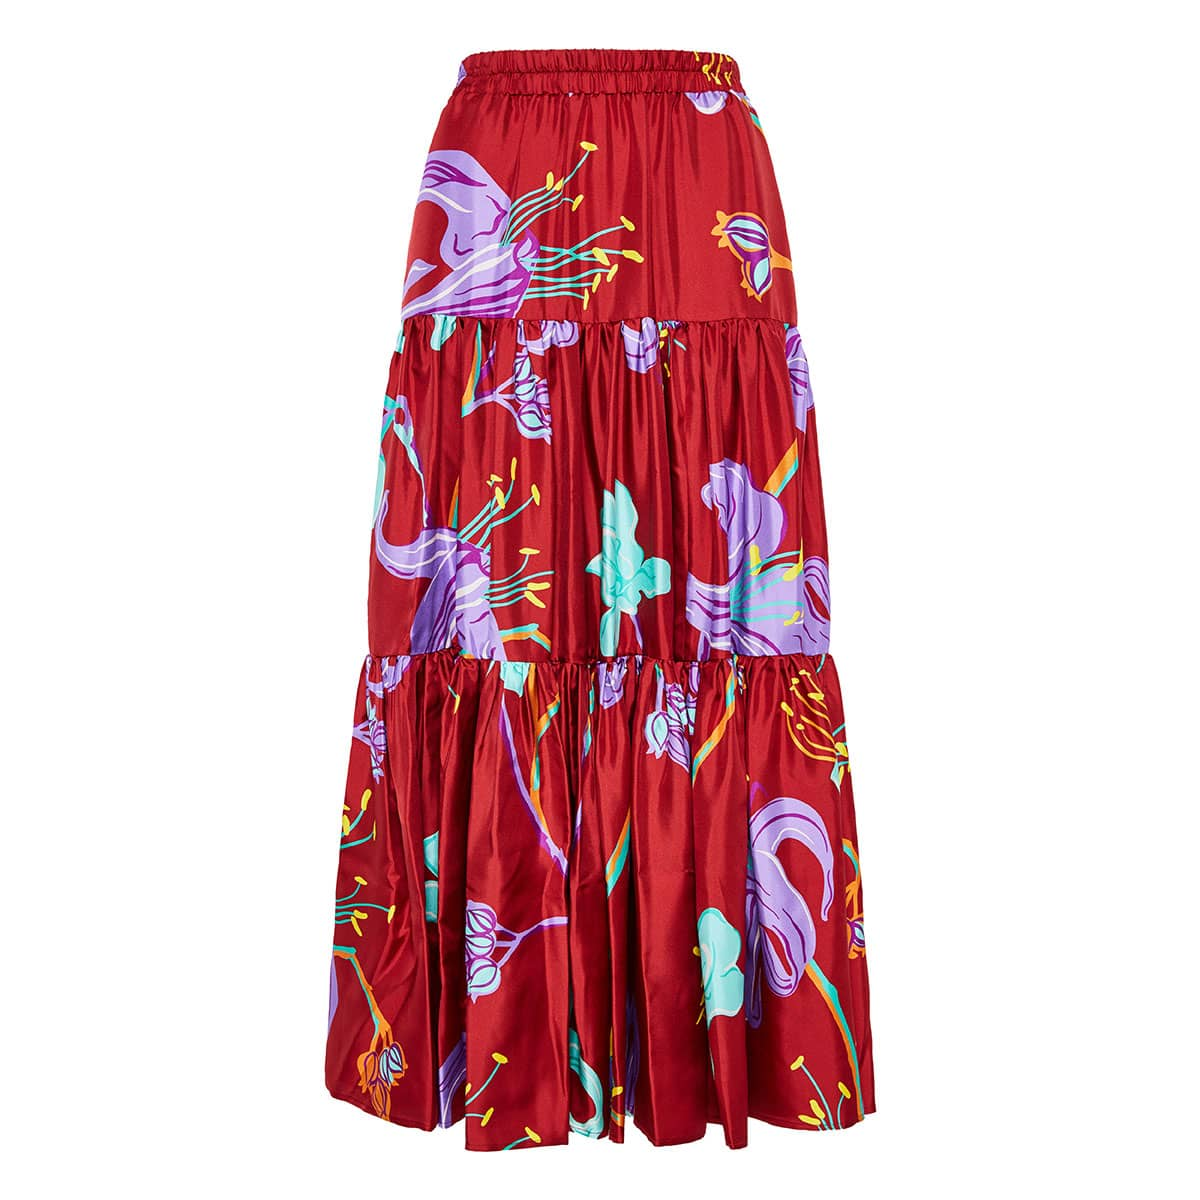 Big printed silk tiered skirt